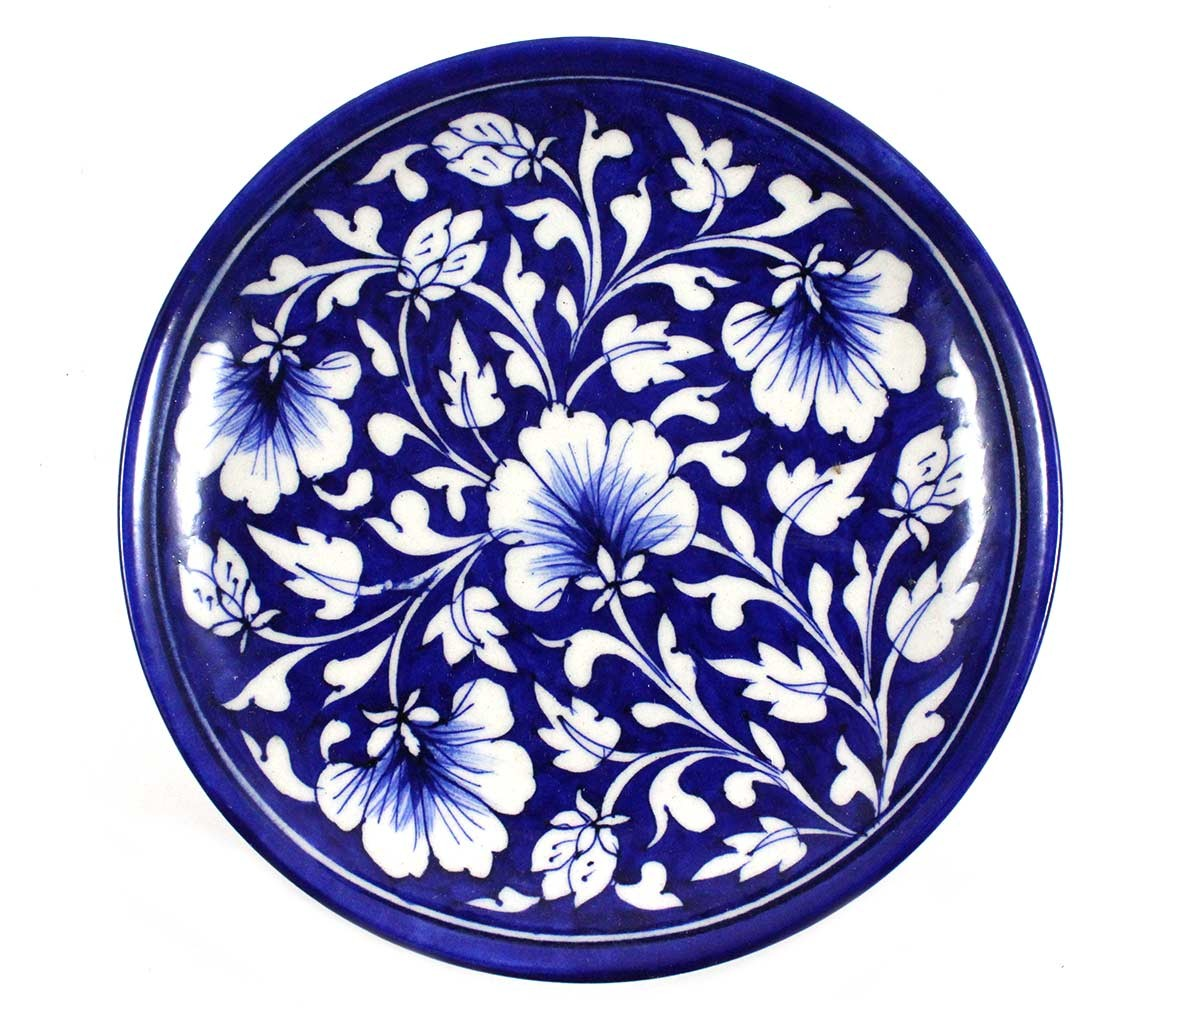 Decorative Ceramic Wall Plates Buy Exclusive Blue Art Decorative Ceramic Wall Art Plateindia